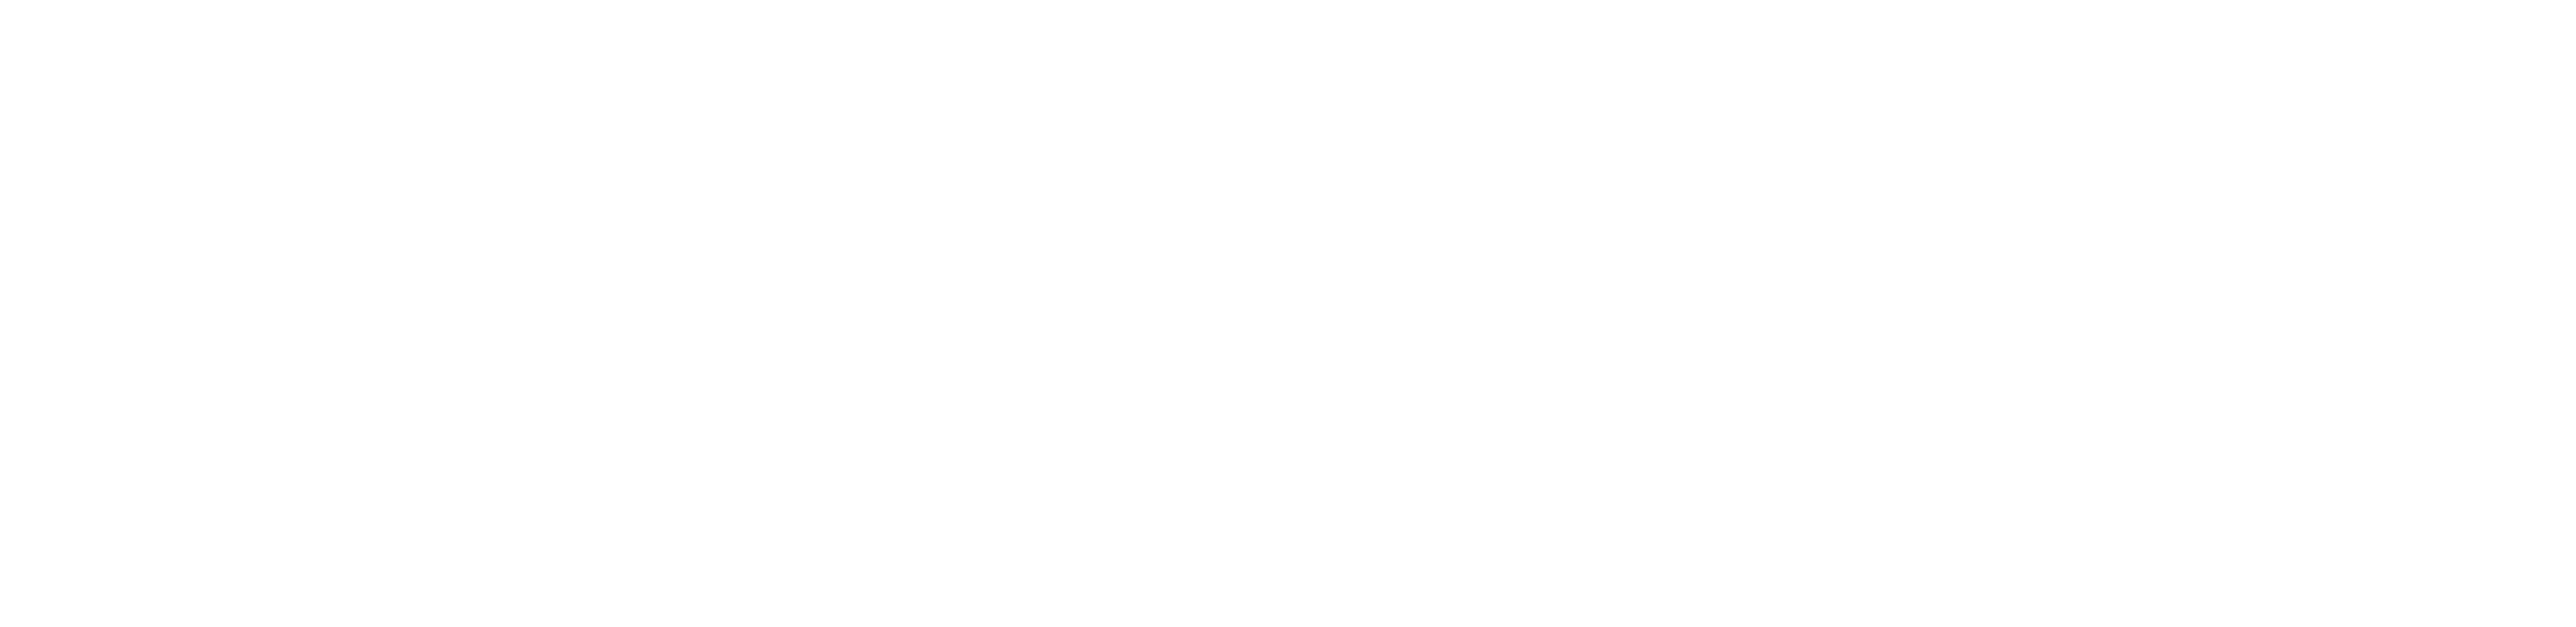 Donate to Full Cart - Grocery Club